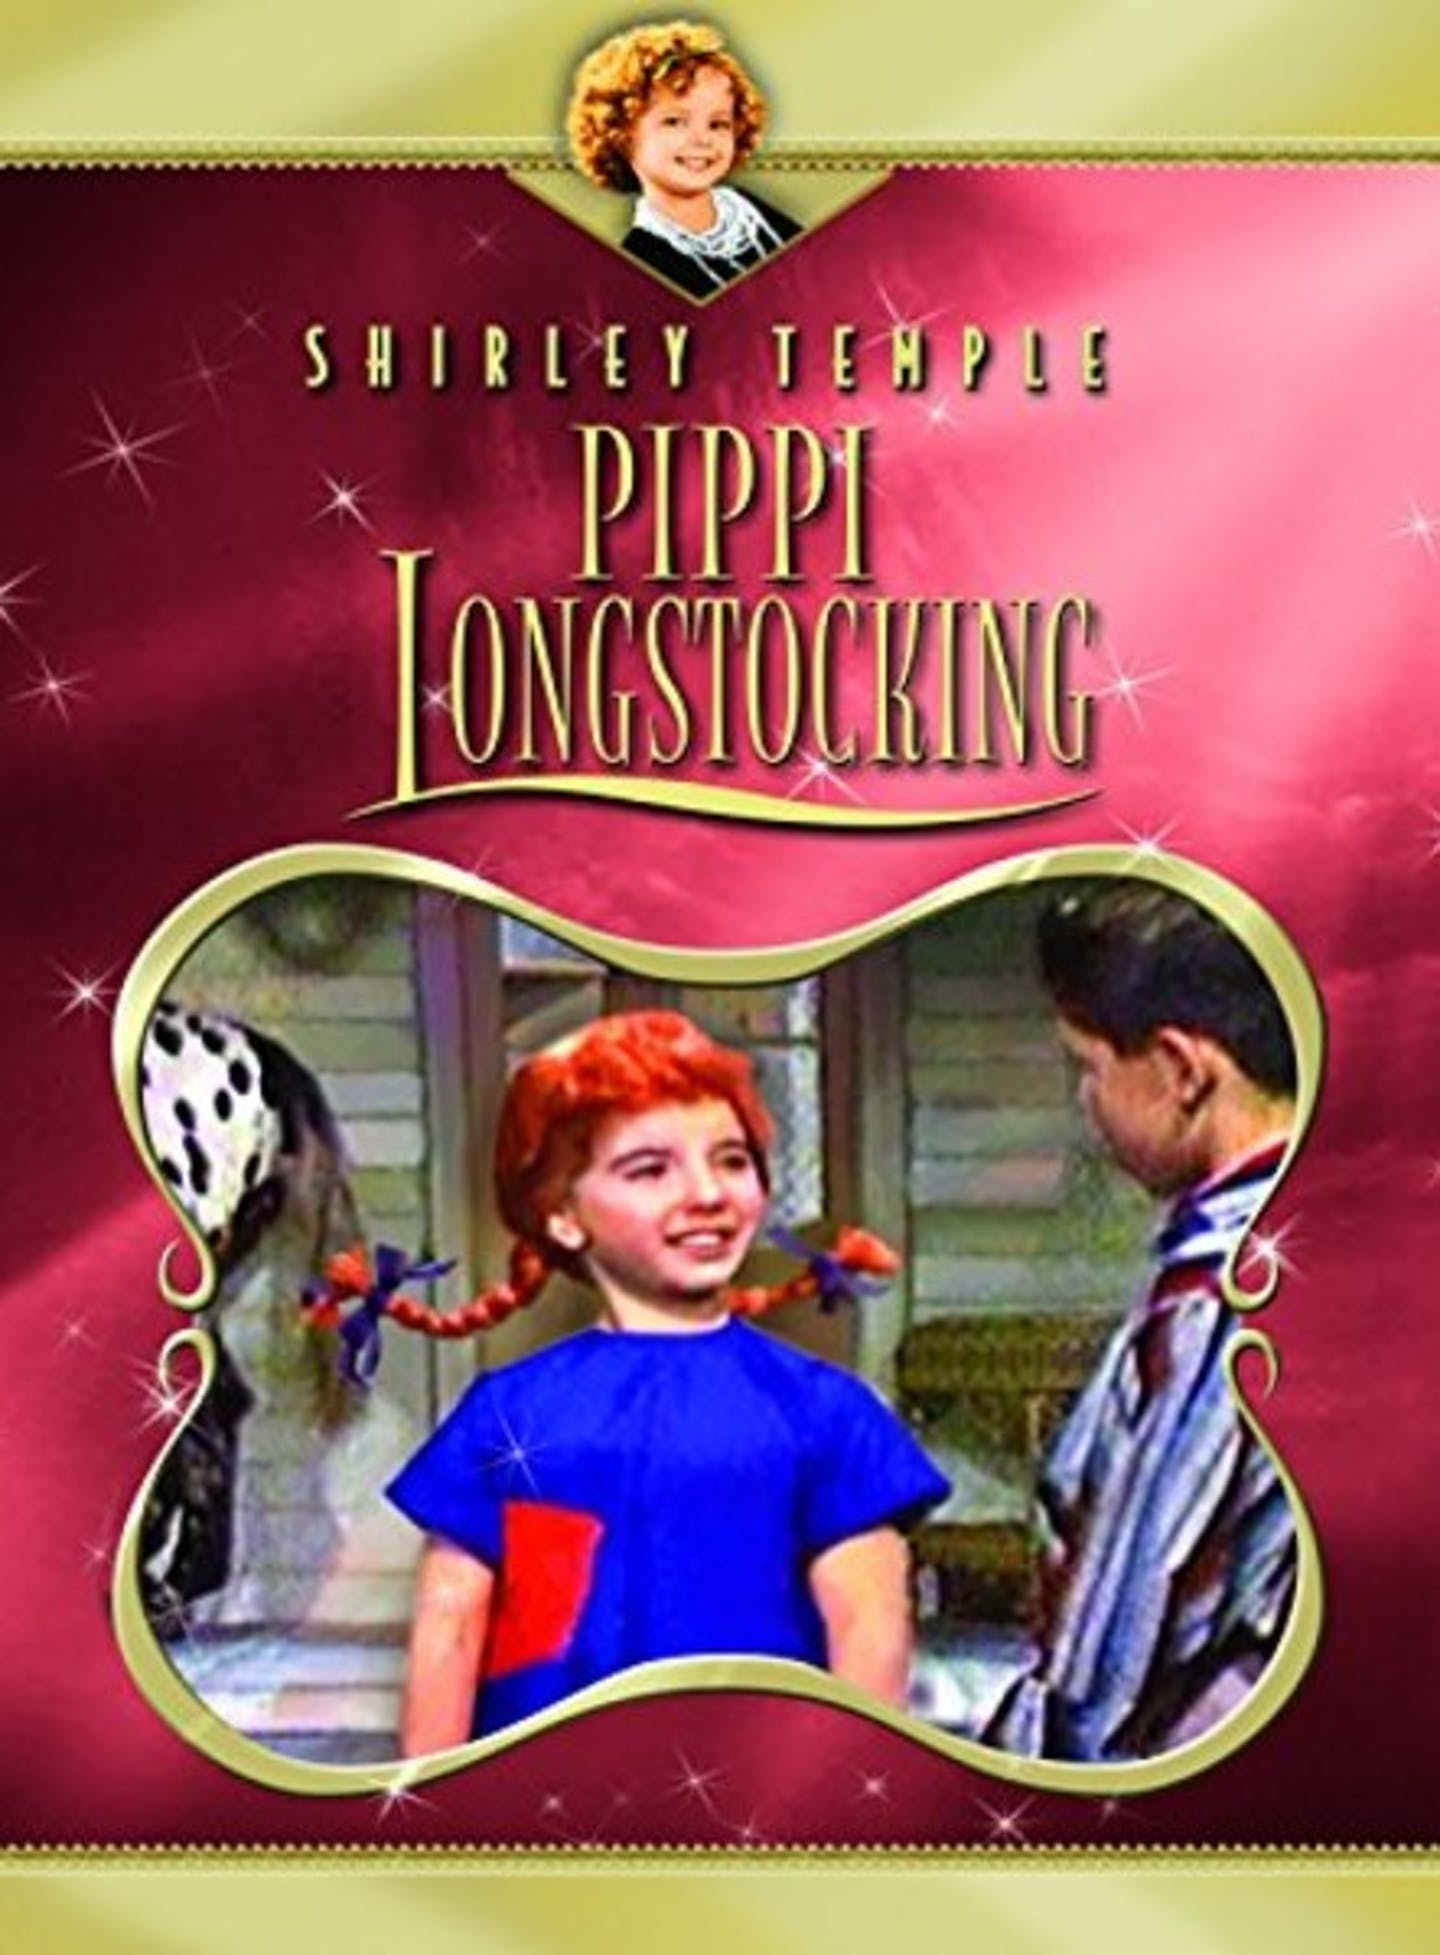 Film poster Shirley Temple's Storybook Pippi Longstocking